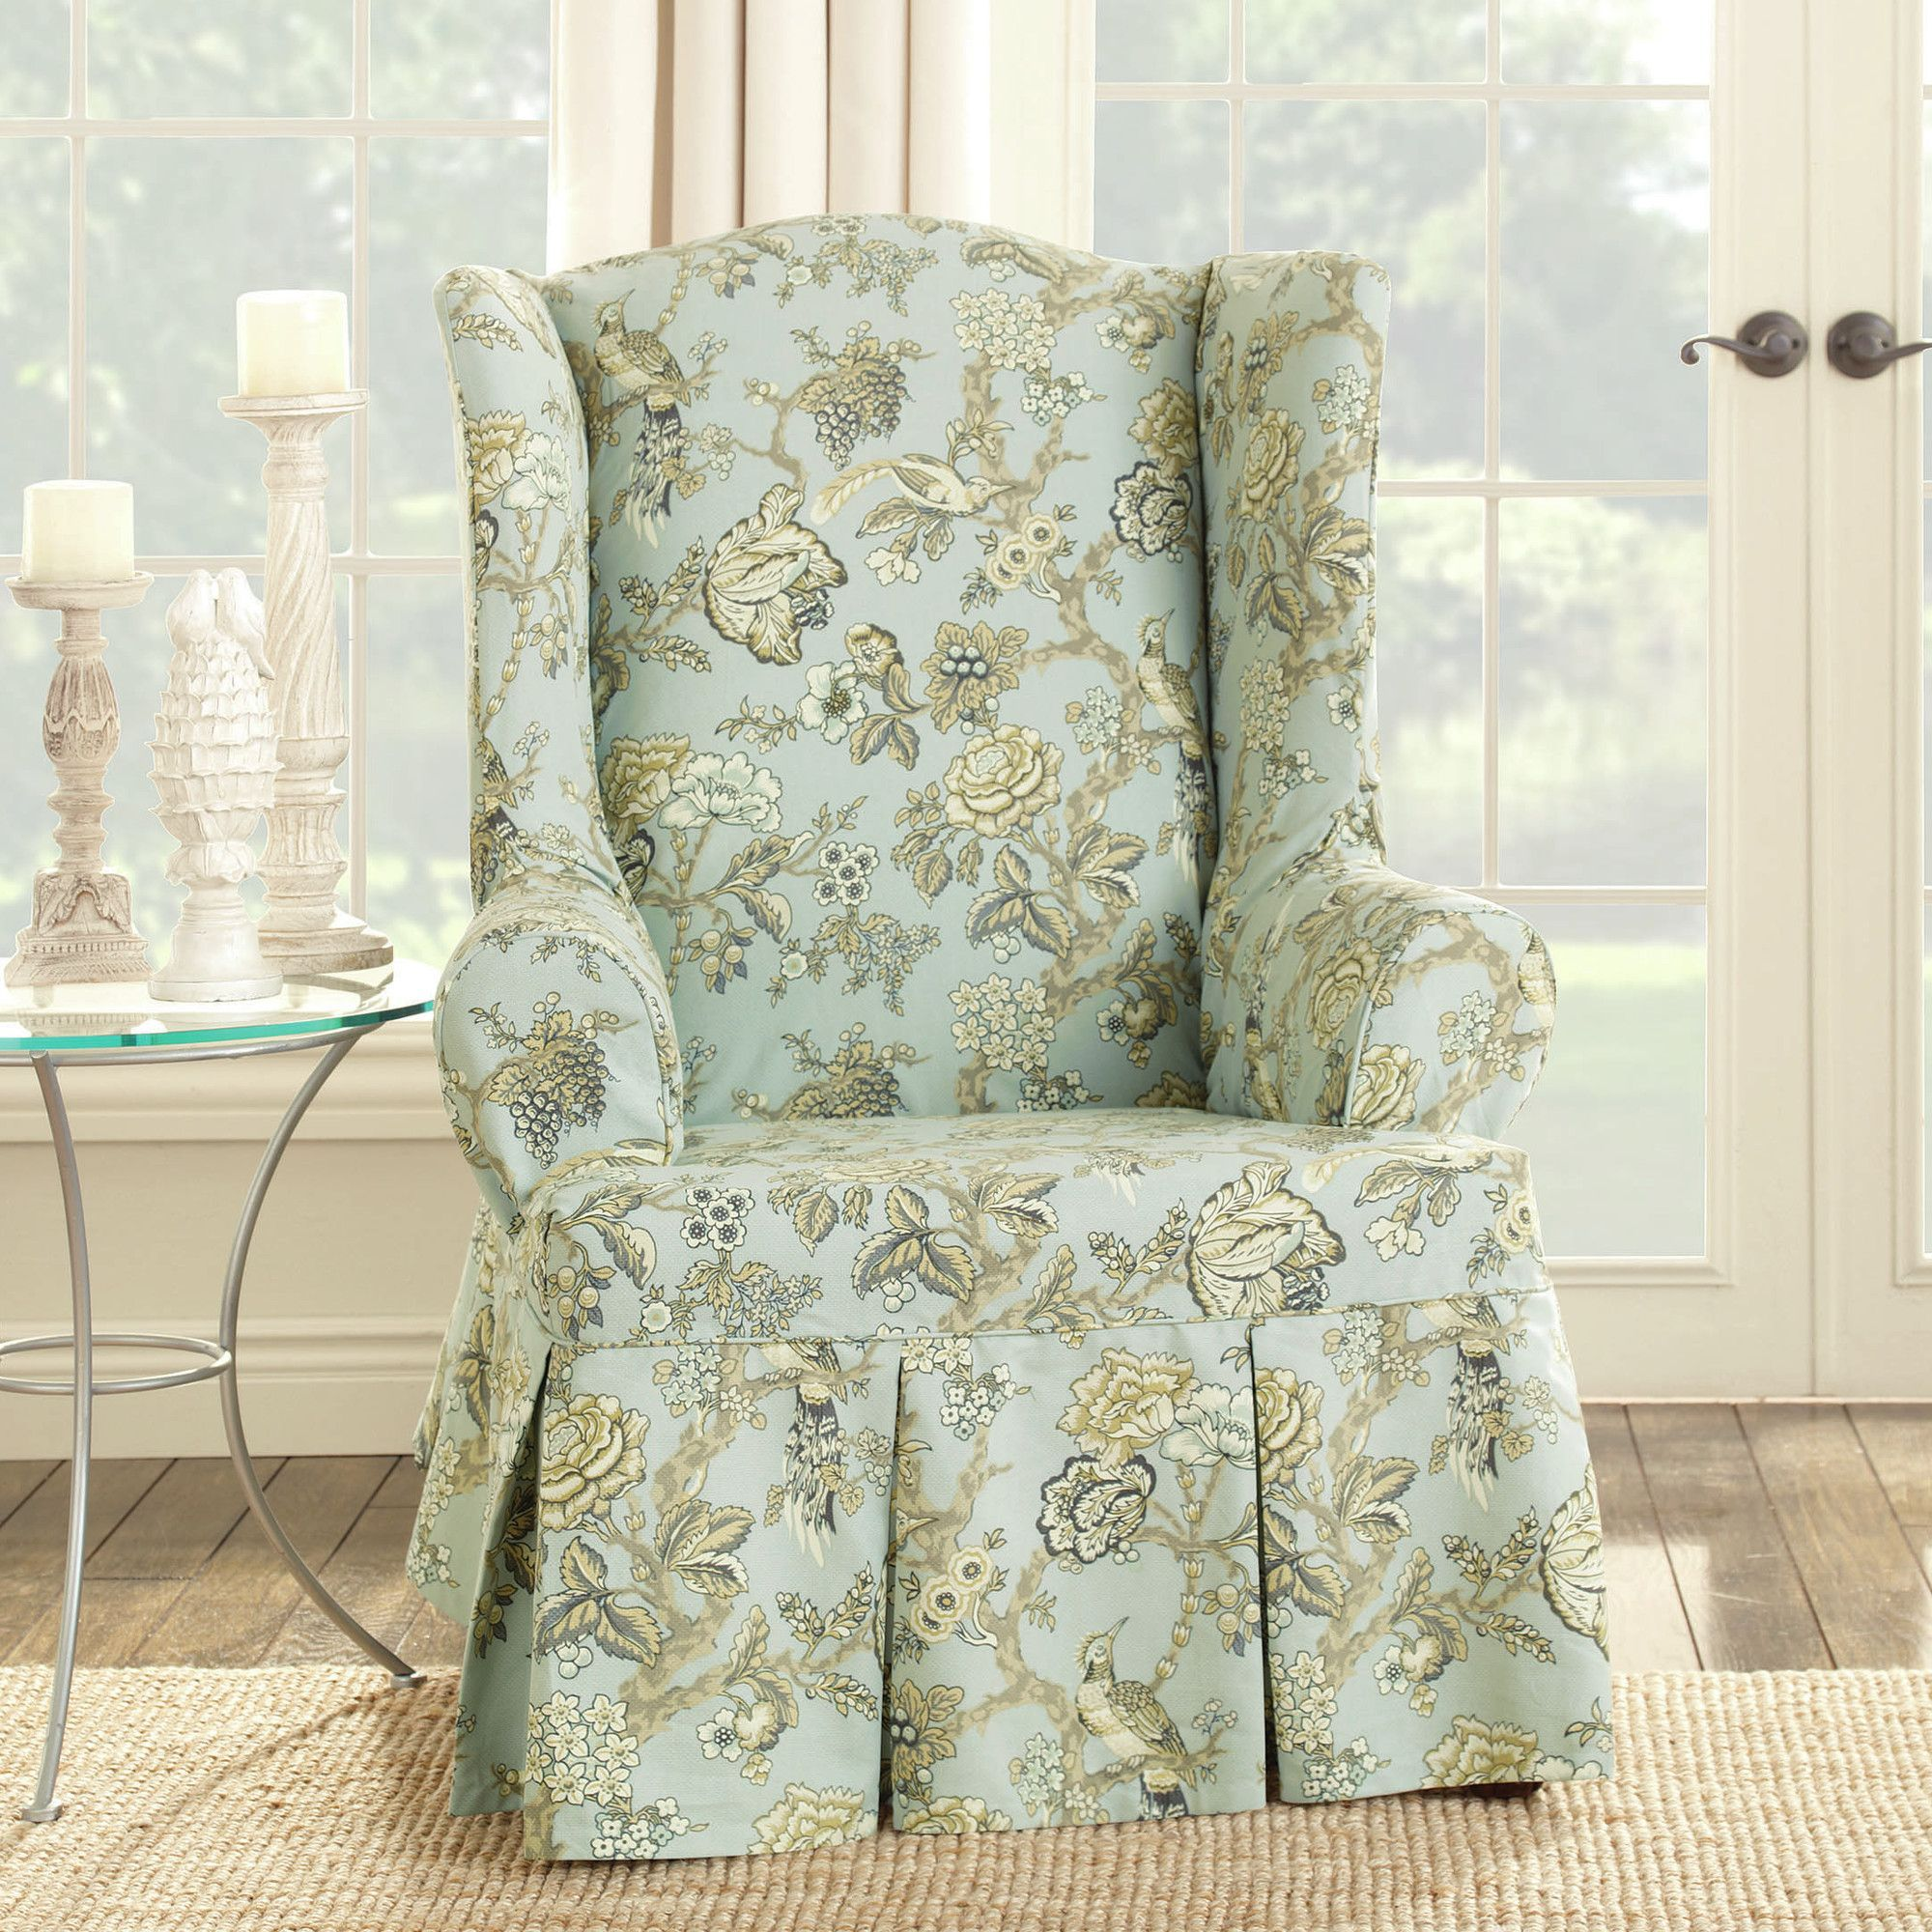 with home in arrangement gallery on decor wingback modern excellent inspiration chair slipcovers great ideas wing slipcover luxury most to remodel